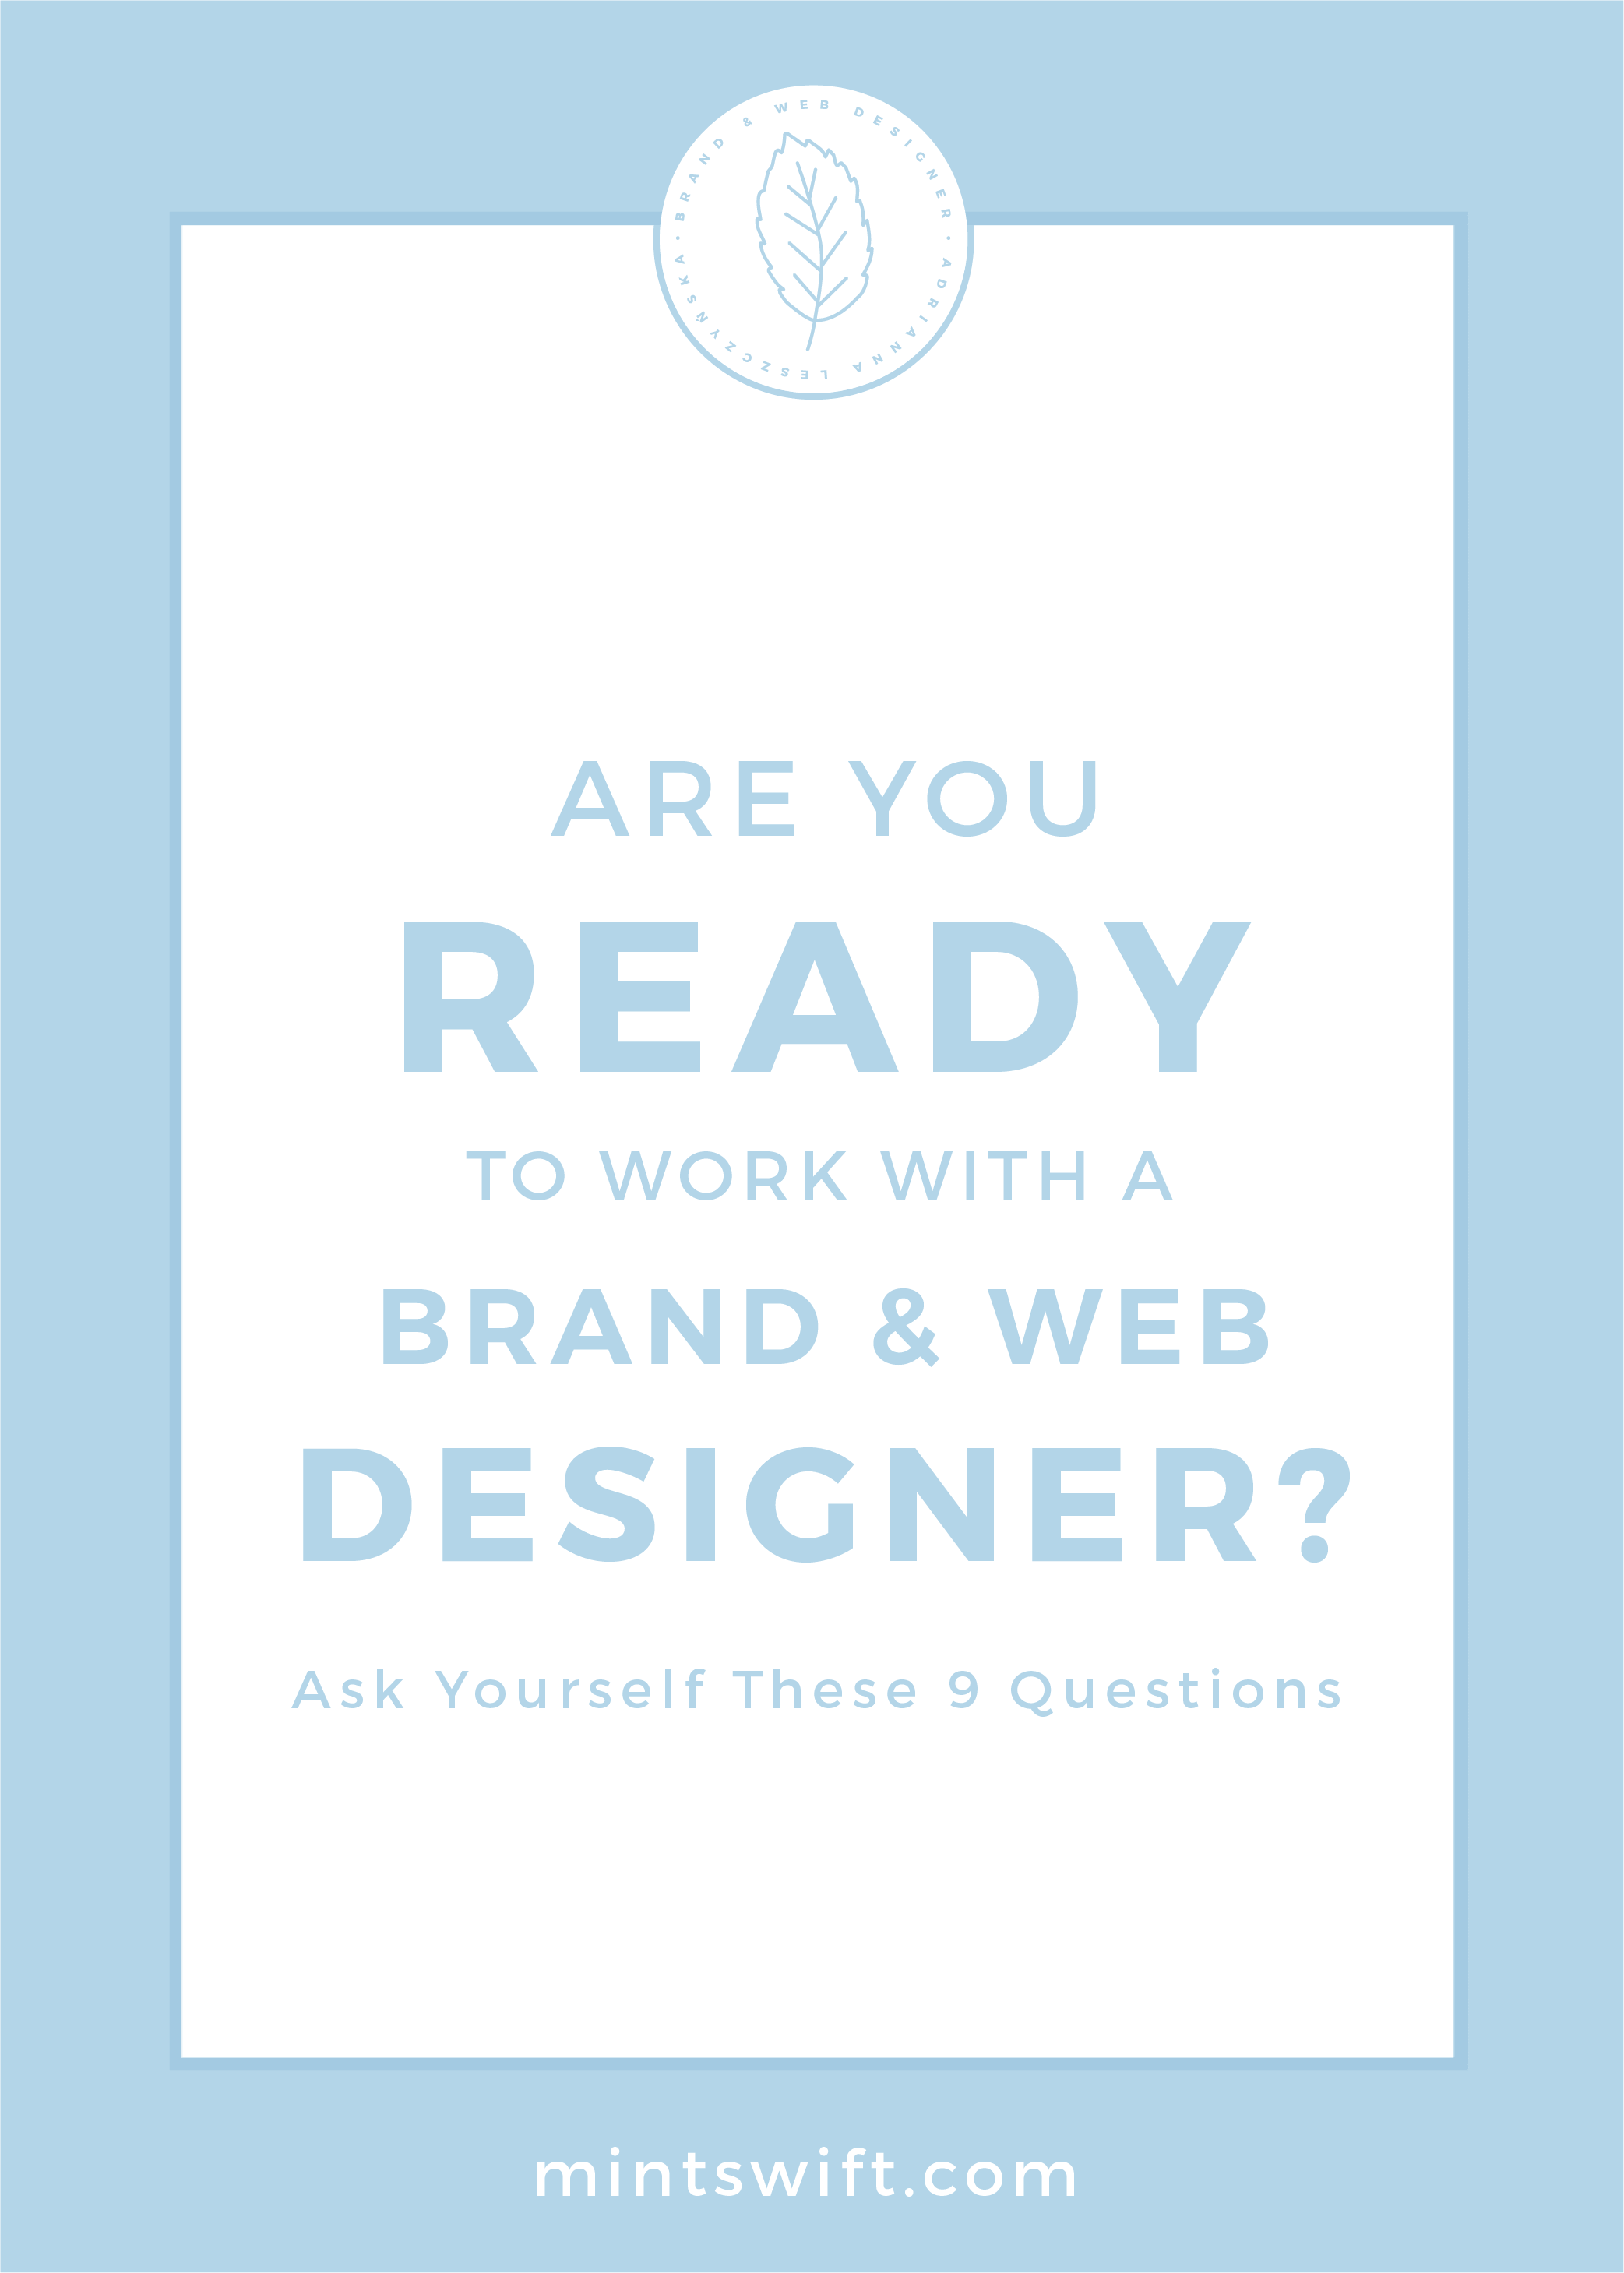 Are You Ready to Work With a Brand & Web Designer Ask Yourself These 9 Questions by MintSwift